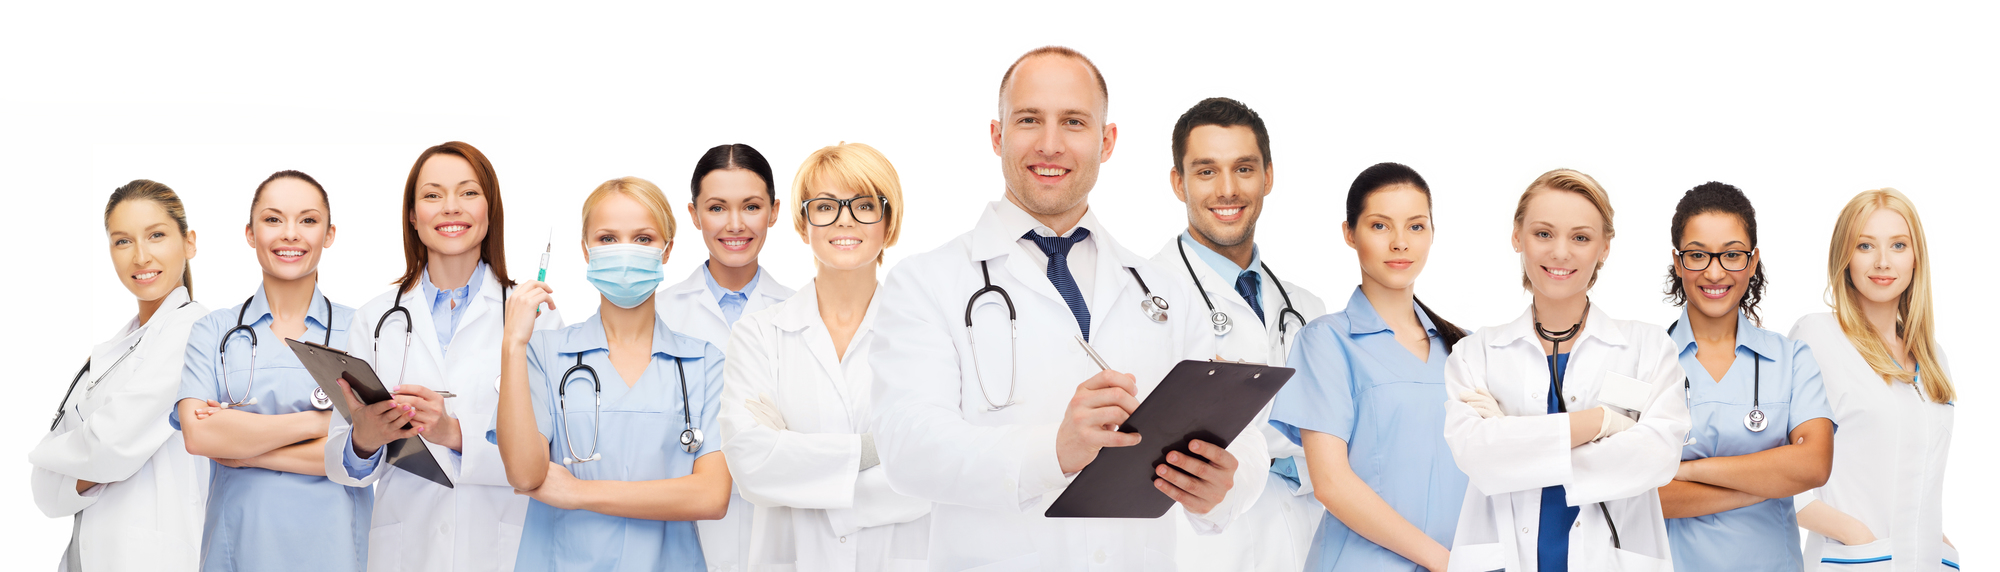 medicine, profession, teamwork and healthcare concept - international group of smiling medics or doctors with clipboard and stethoscopes over white background